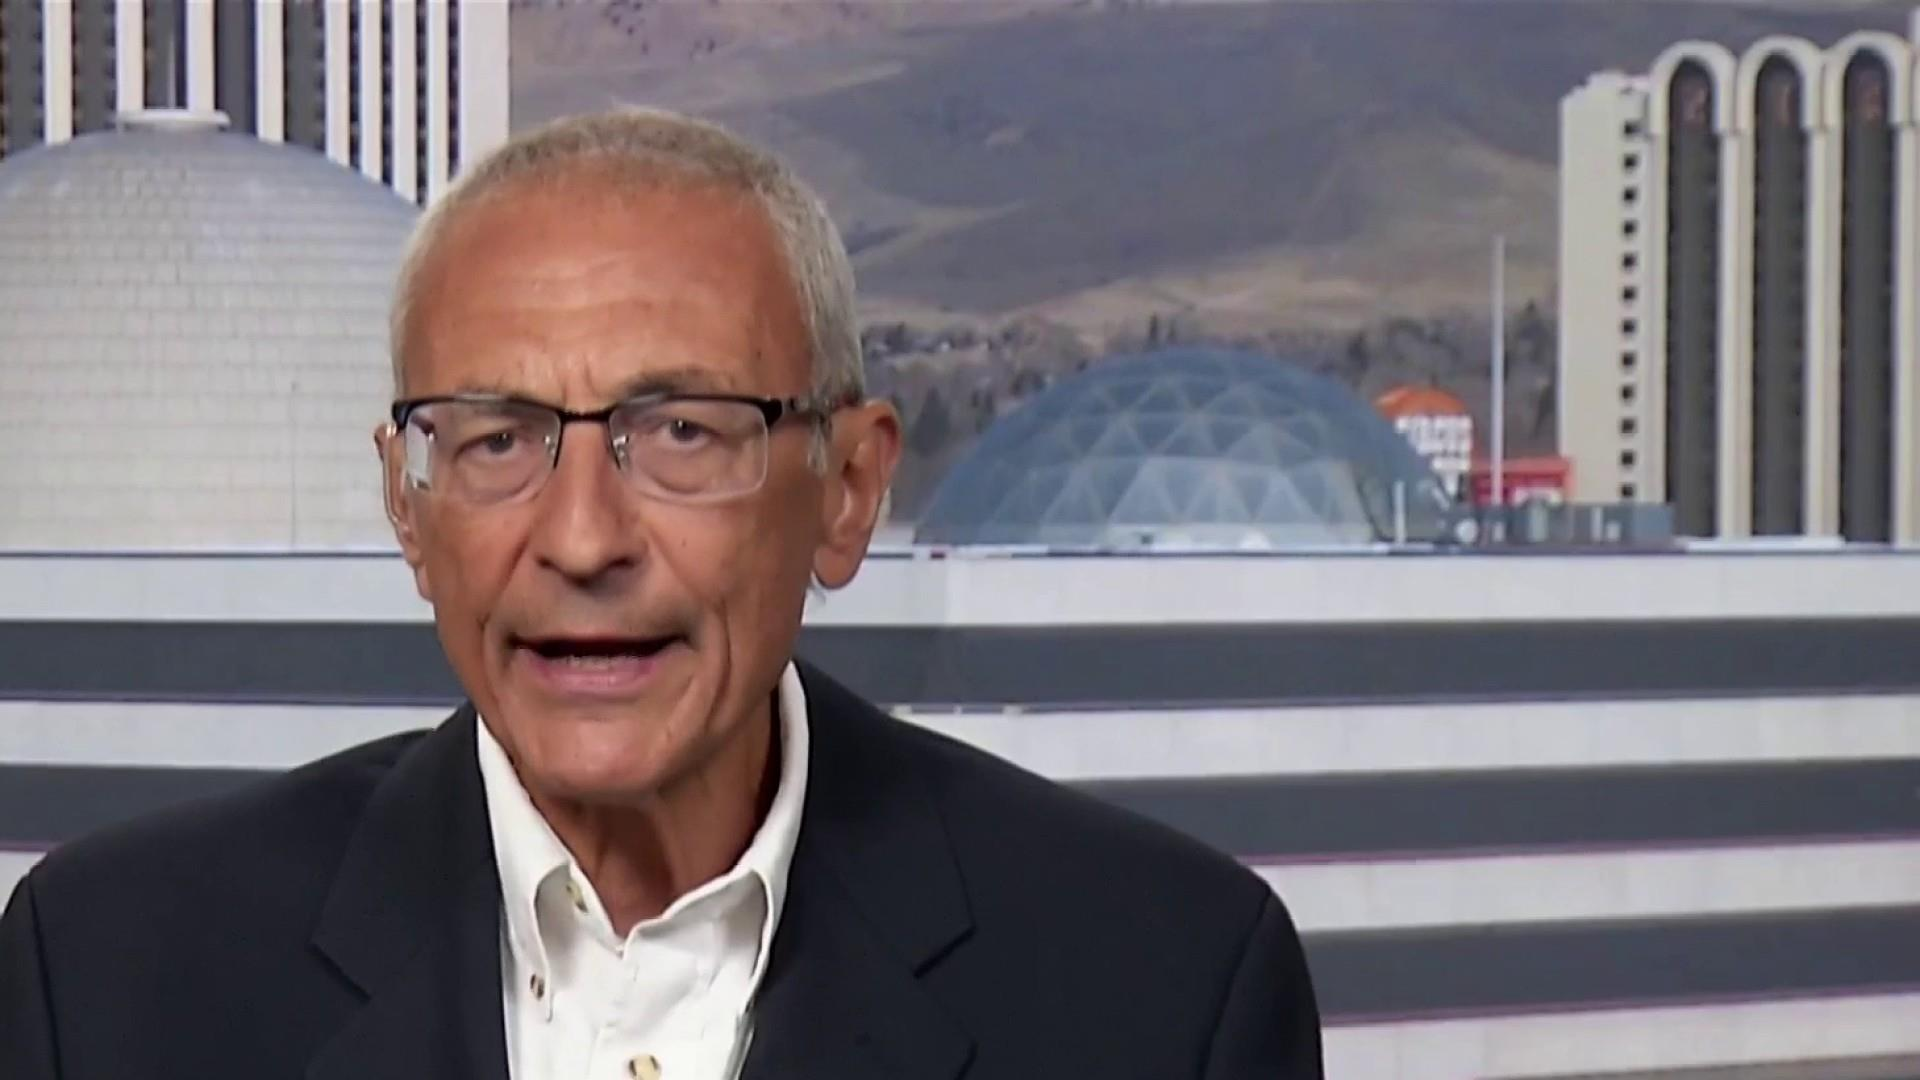 Full Podesta: 'Critical' we move forward with election protection legislation